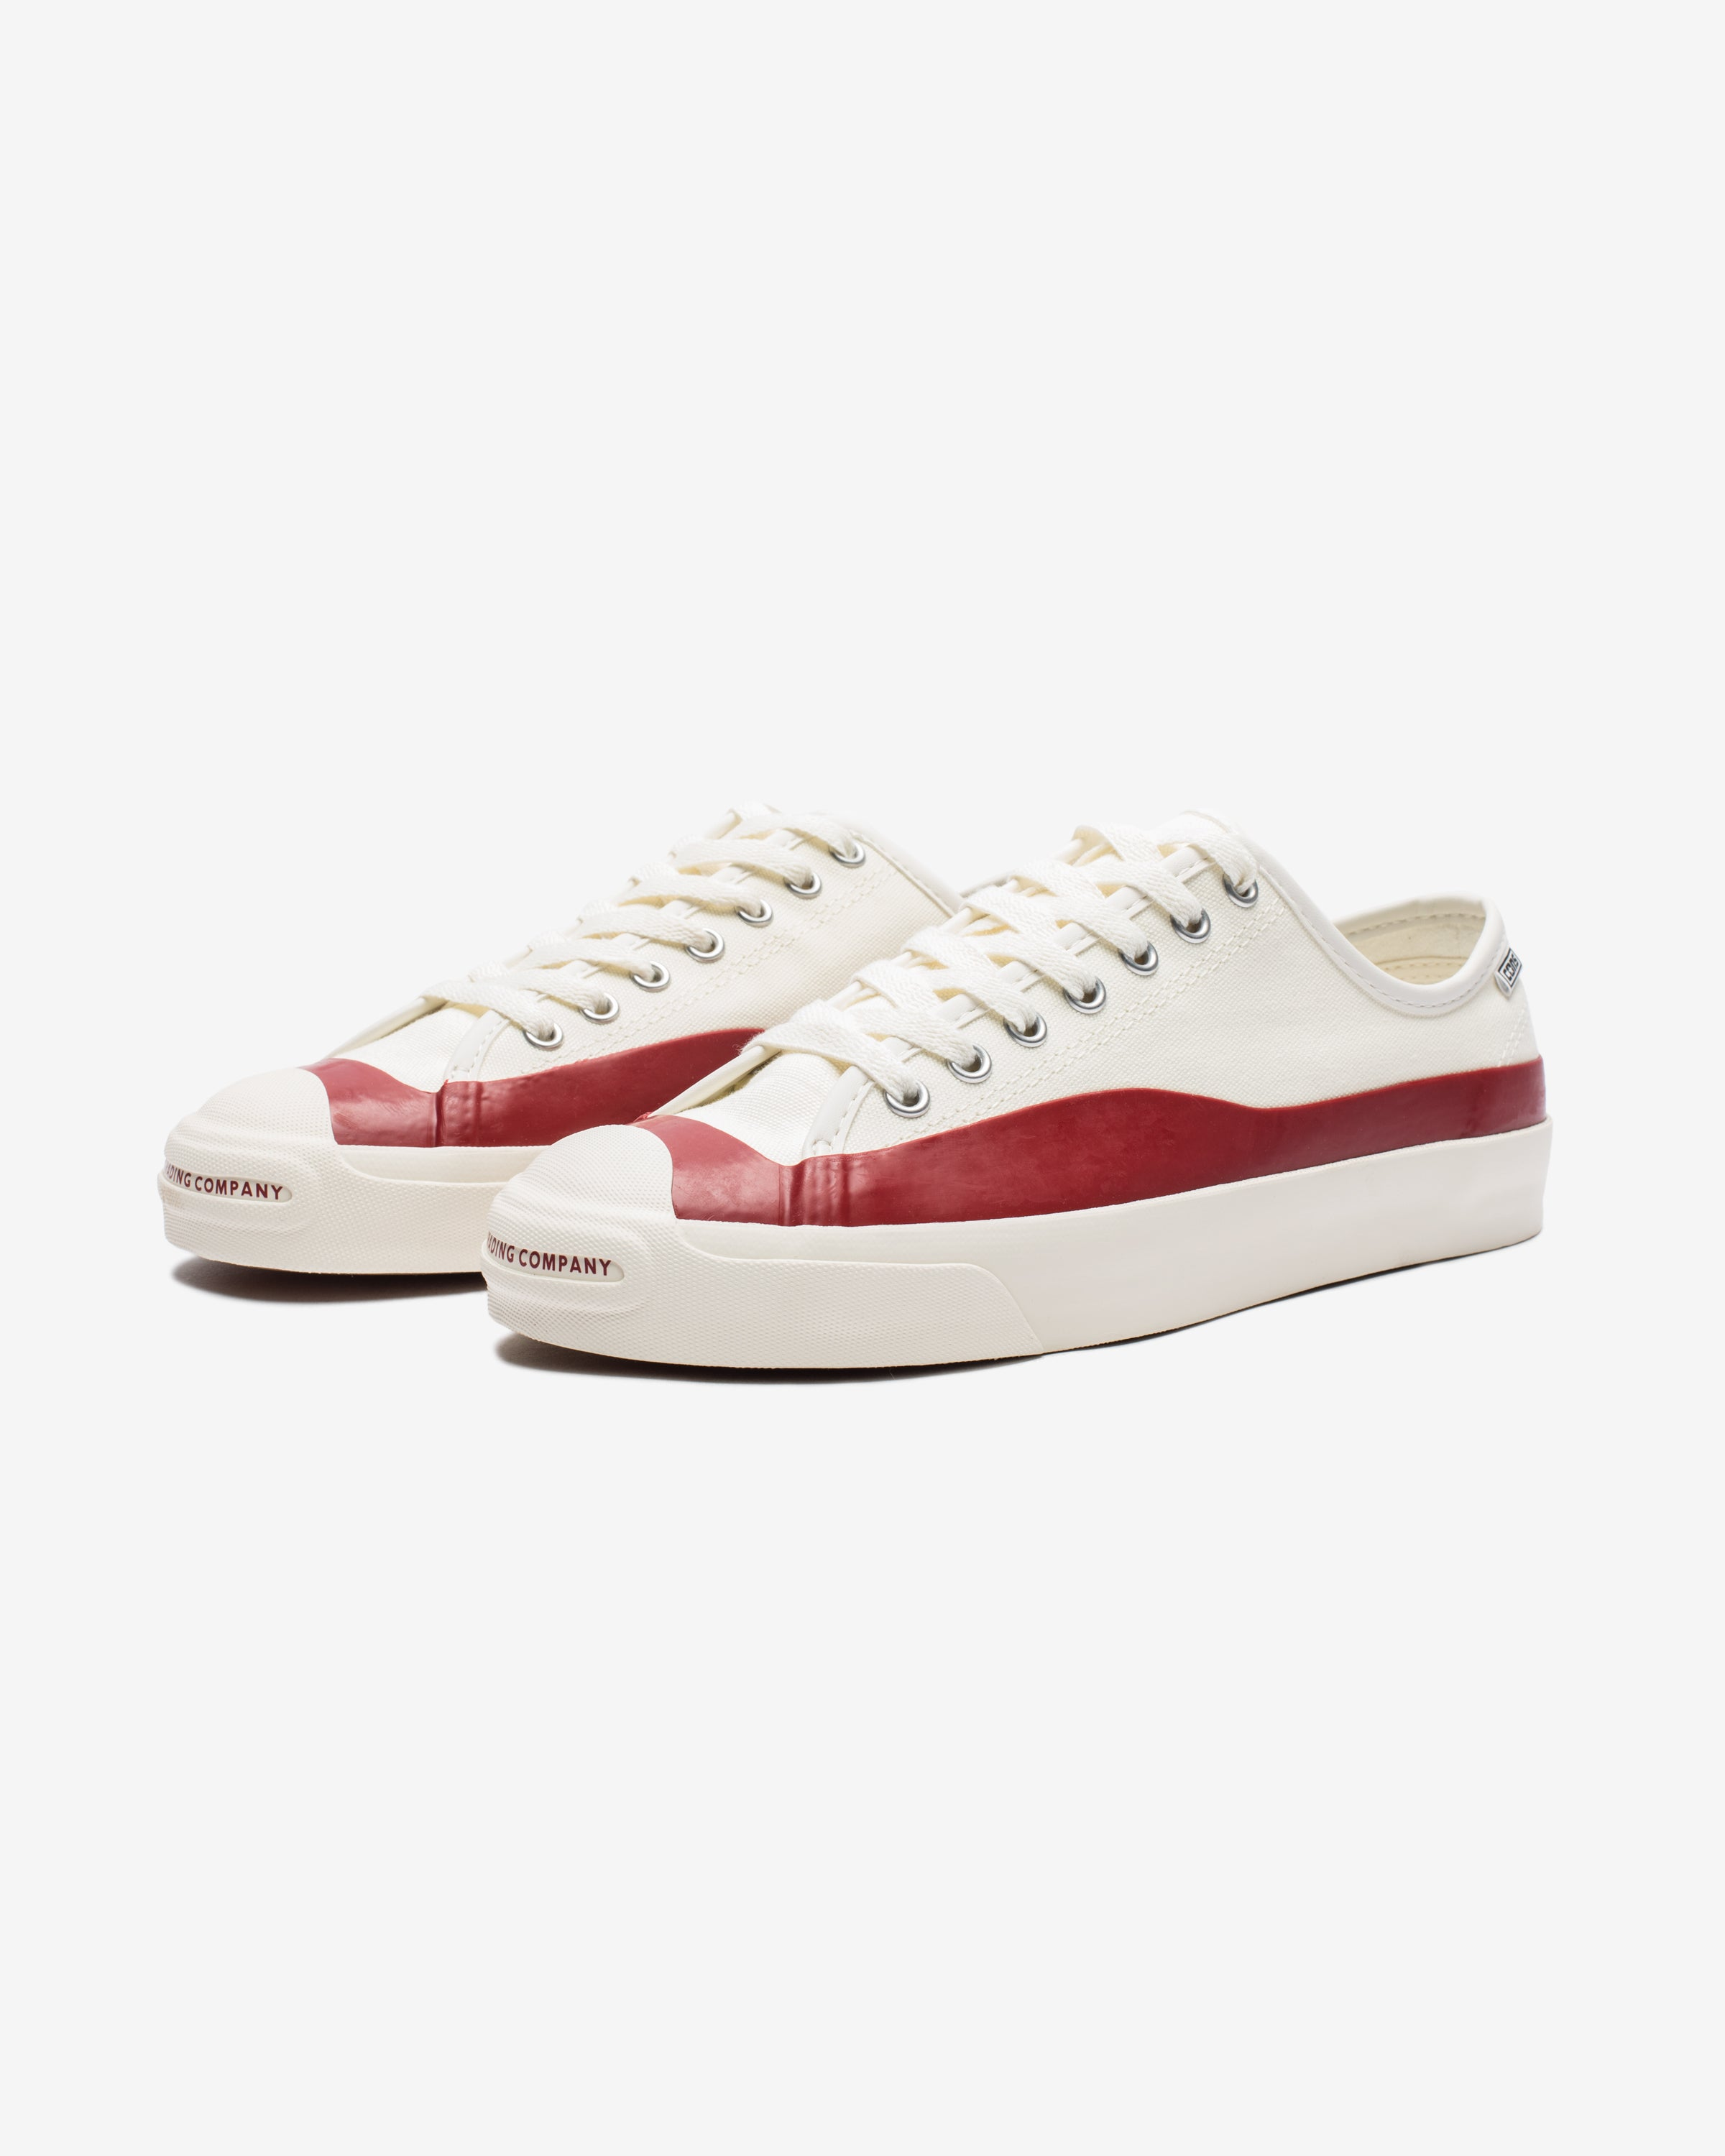 CONVERSE X POP TRADING CO JACK PURCELL